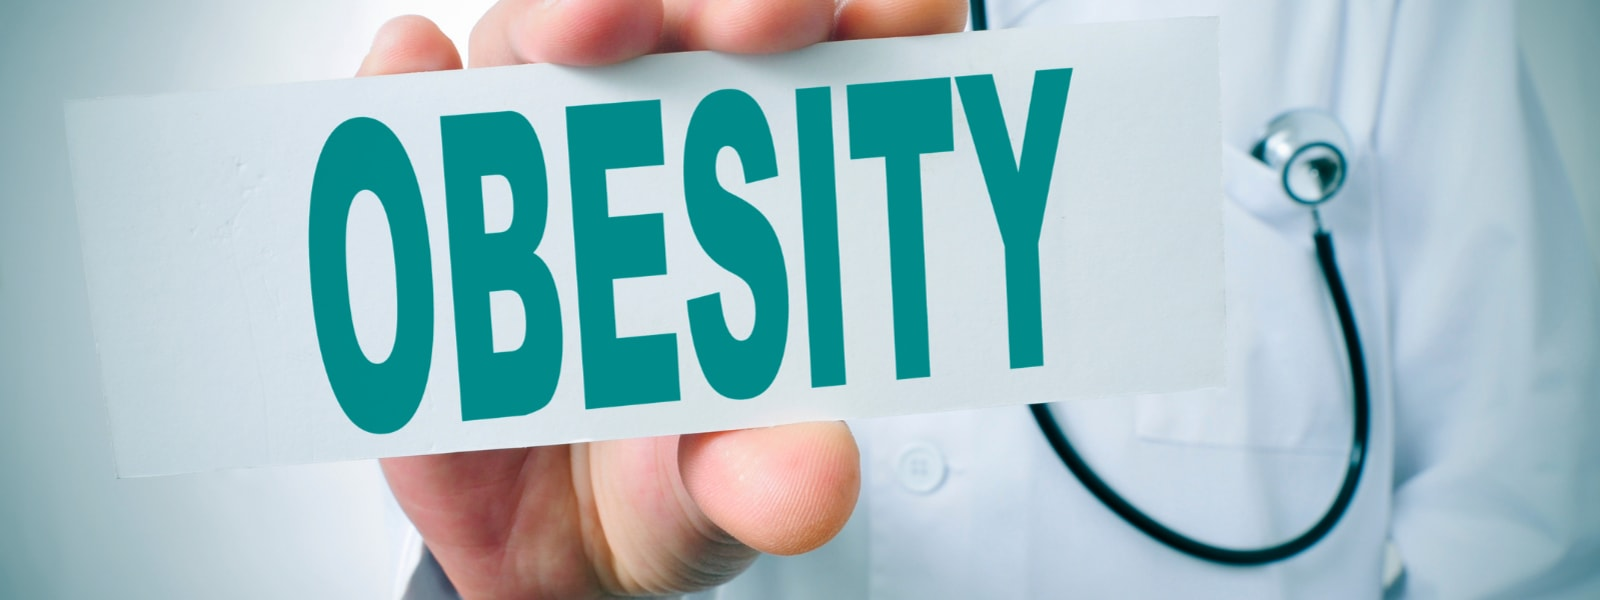 Obesity significantly increases chances of severe outcomes for COVID-19 patients